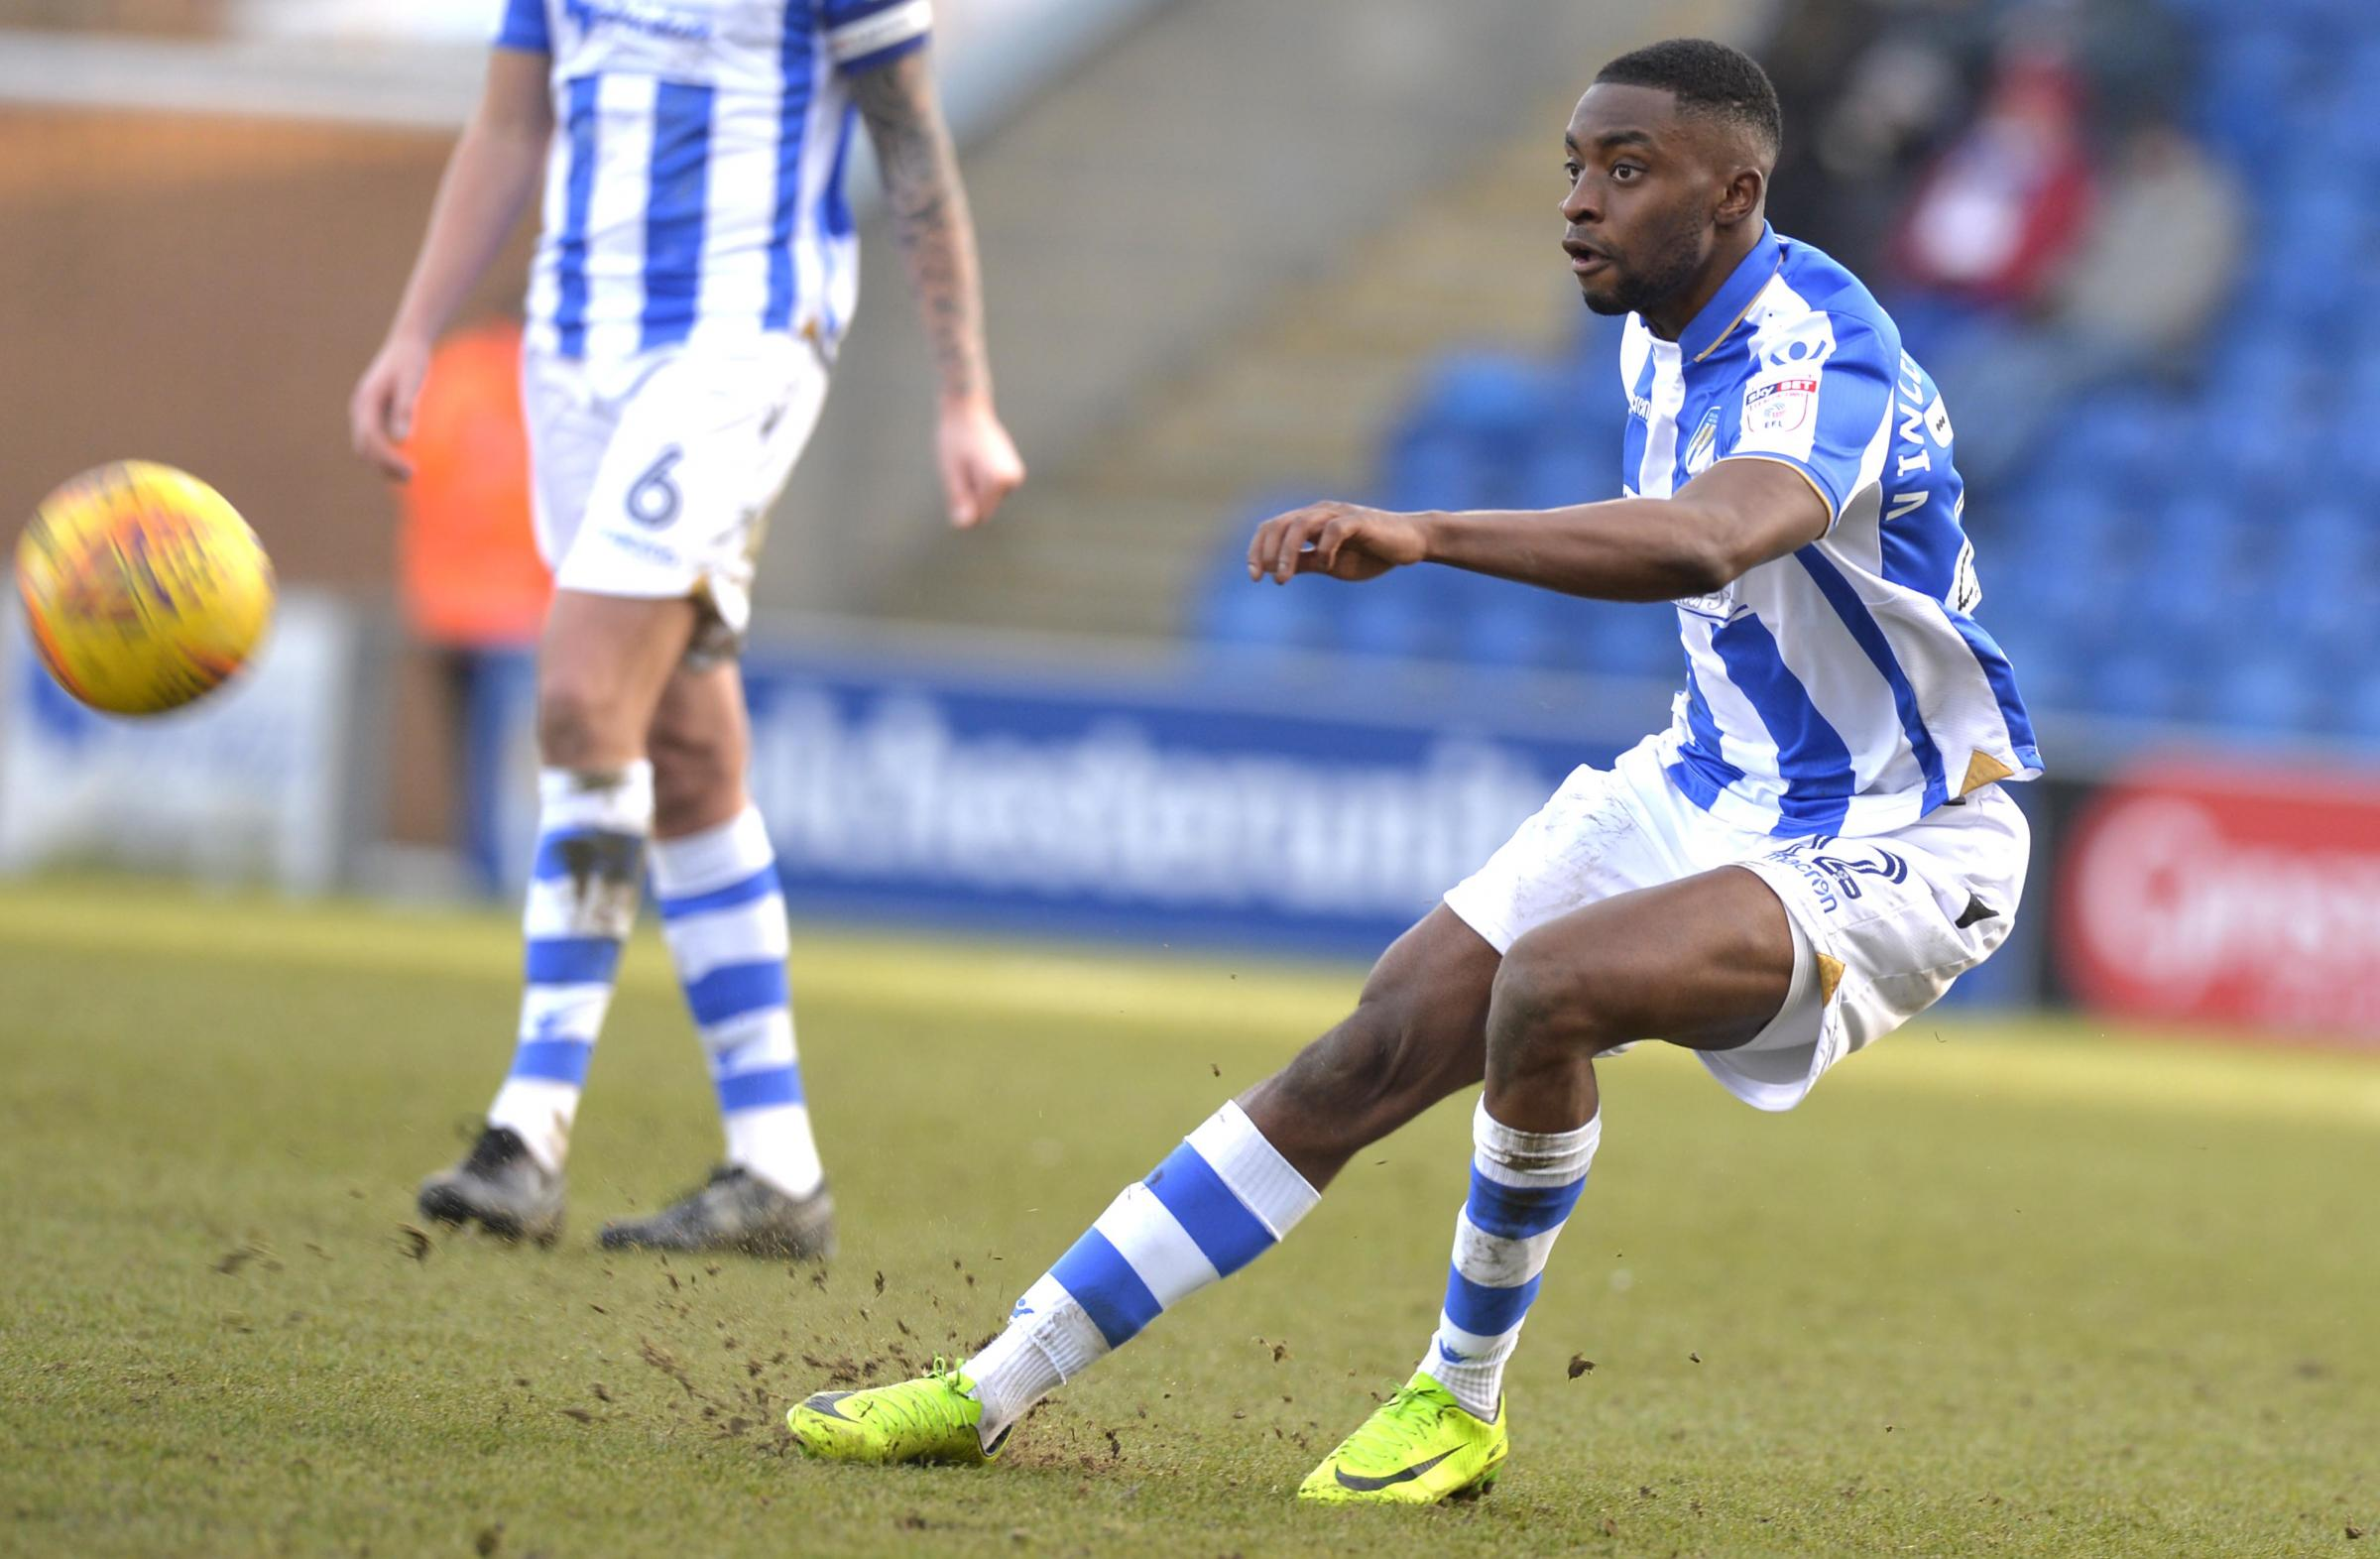 Link up - Kane Vincent-Young will travel to Cheshire with the rest of the Colchester United squad for their pre-season camp in Cheshire Picture: STEVE BRADING